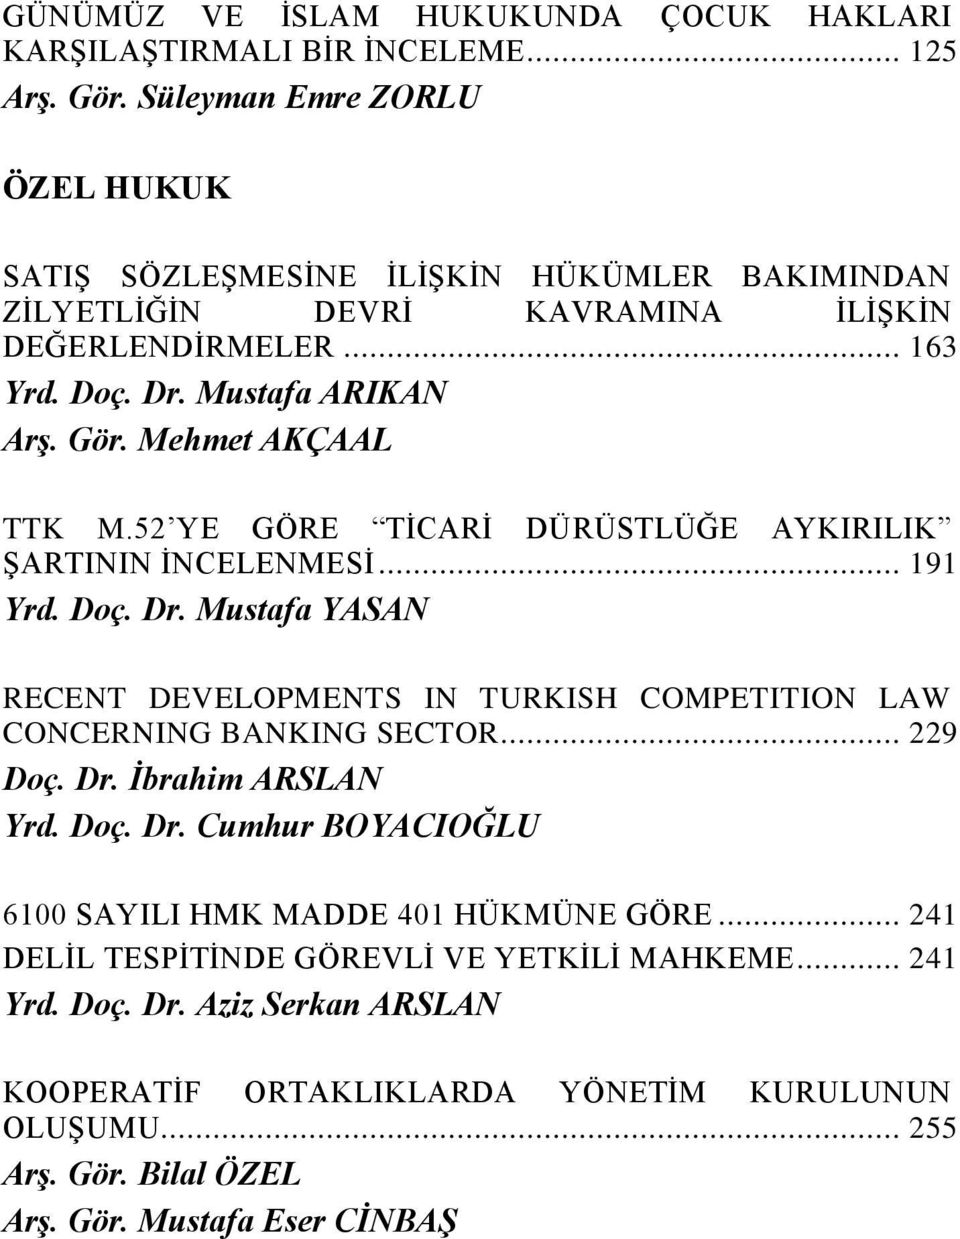 Mehmet AKÇAAL TTK M.52 YE GÖRE TĠCARĠ DÜRÜSTLÜĞE AYKIRILIK ġartinin ĠNCELENMESĠ... 191 Yrd. Doç. Dr. Mustafa YASAN RECENT DEVELOPMENTS IN TURKISH COMPETITION LAW CONCERNING BANKING SECTOR.